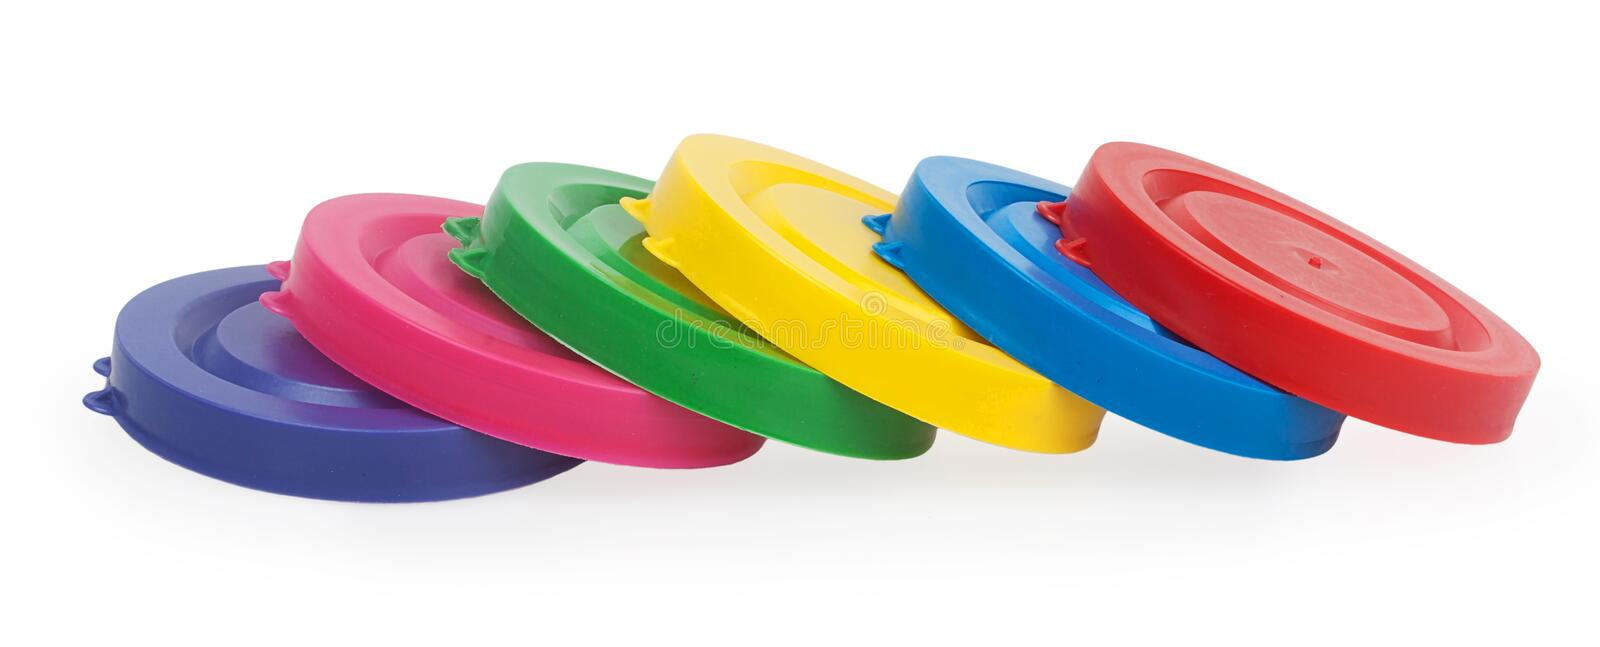 Colorful plastic lids for jars royalty free stock images